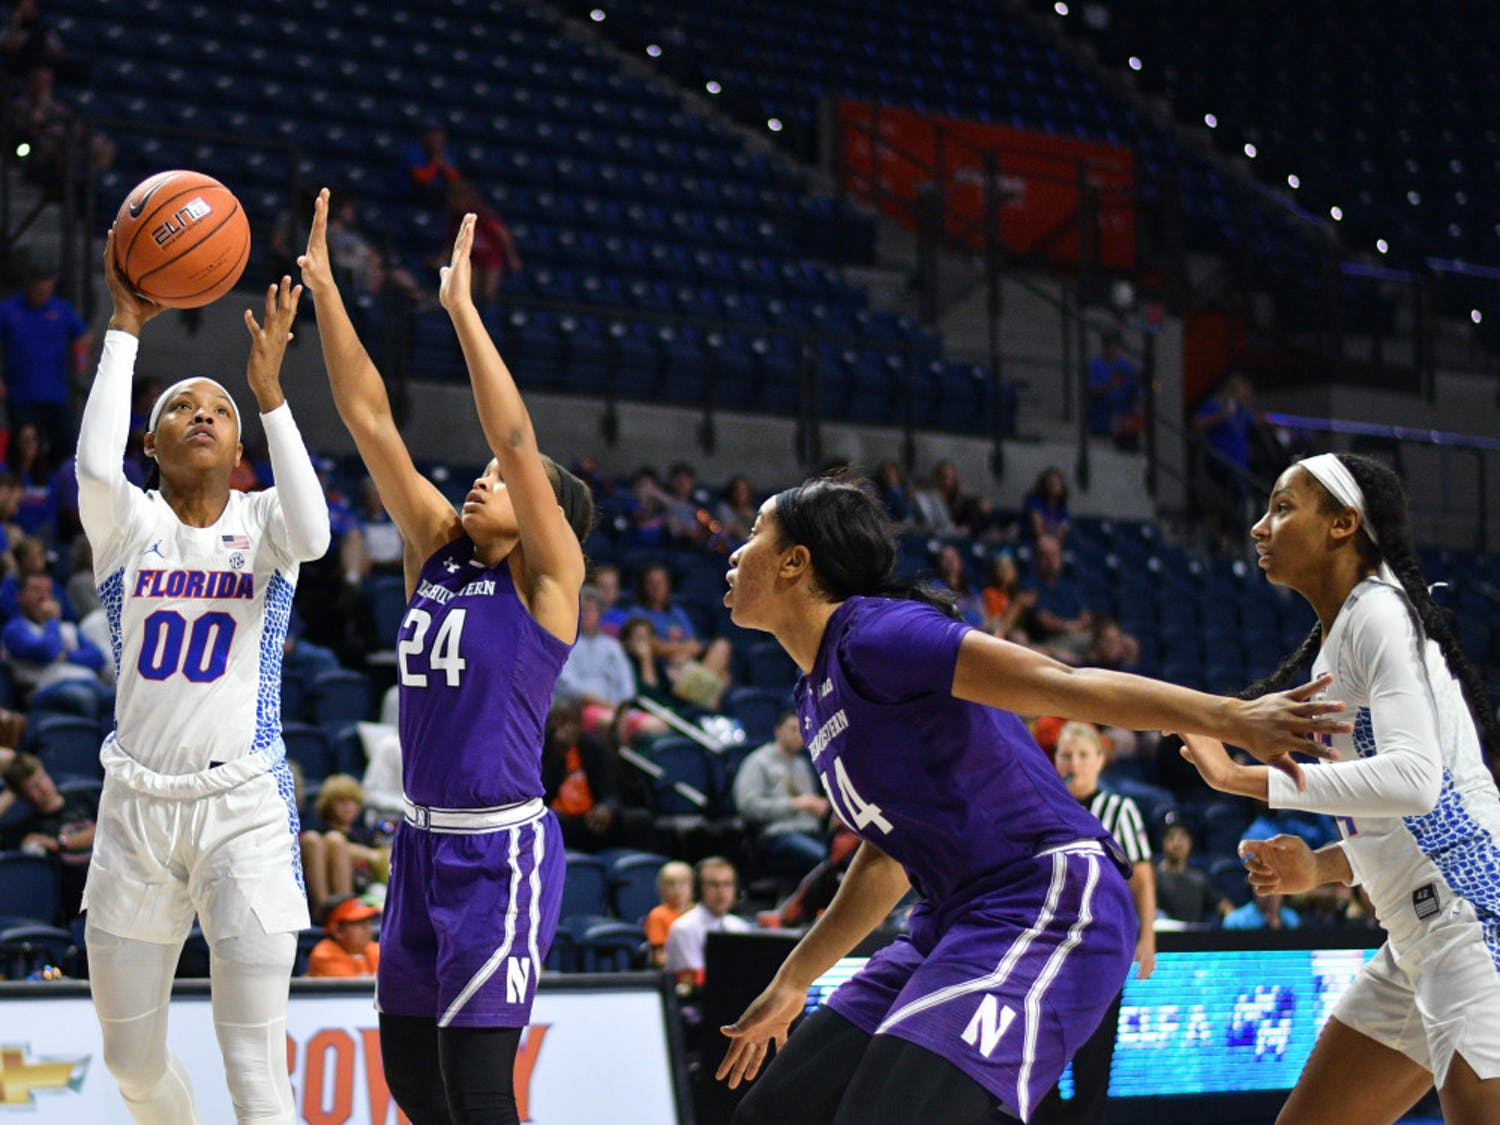 Florida guard Delicia Washington's game-winning layup helped the Gators beat Missouri 58-56, their first win against the Tigers in program history.